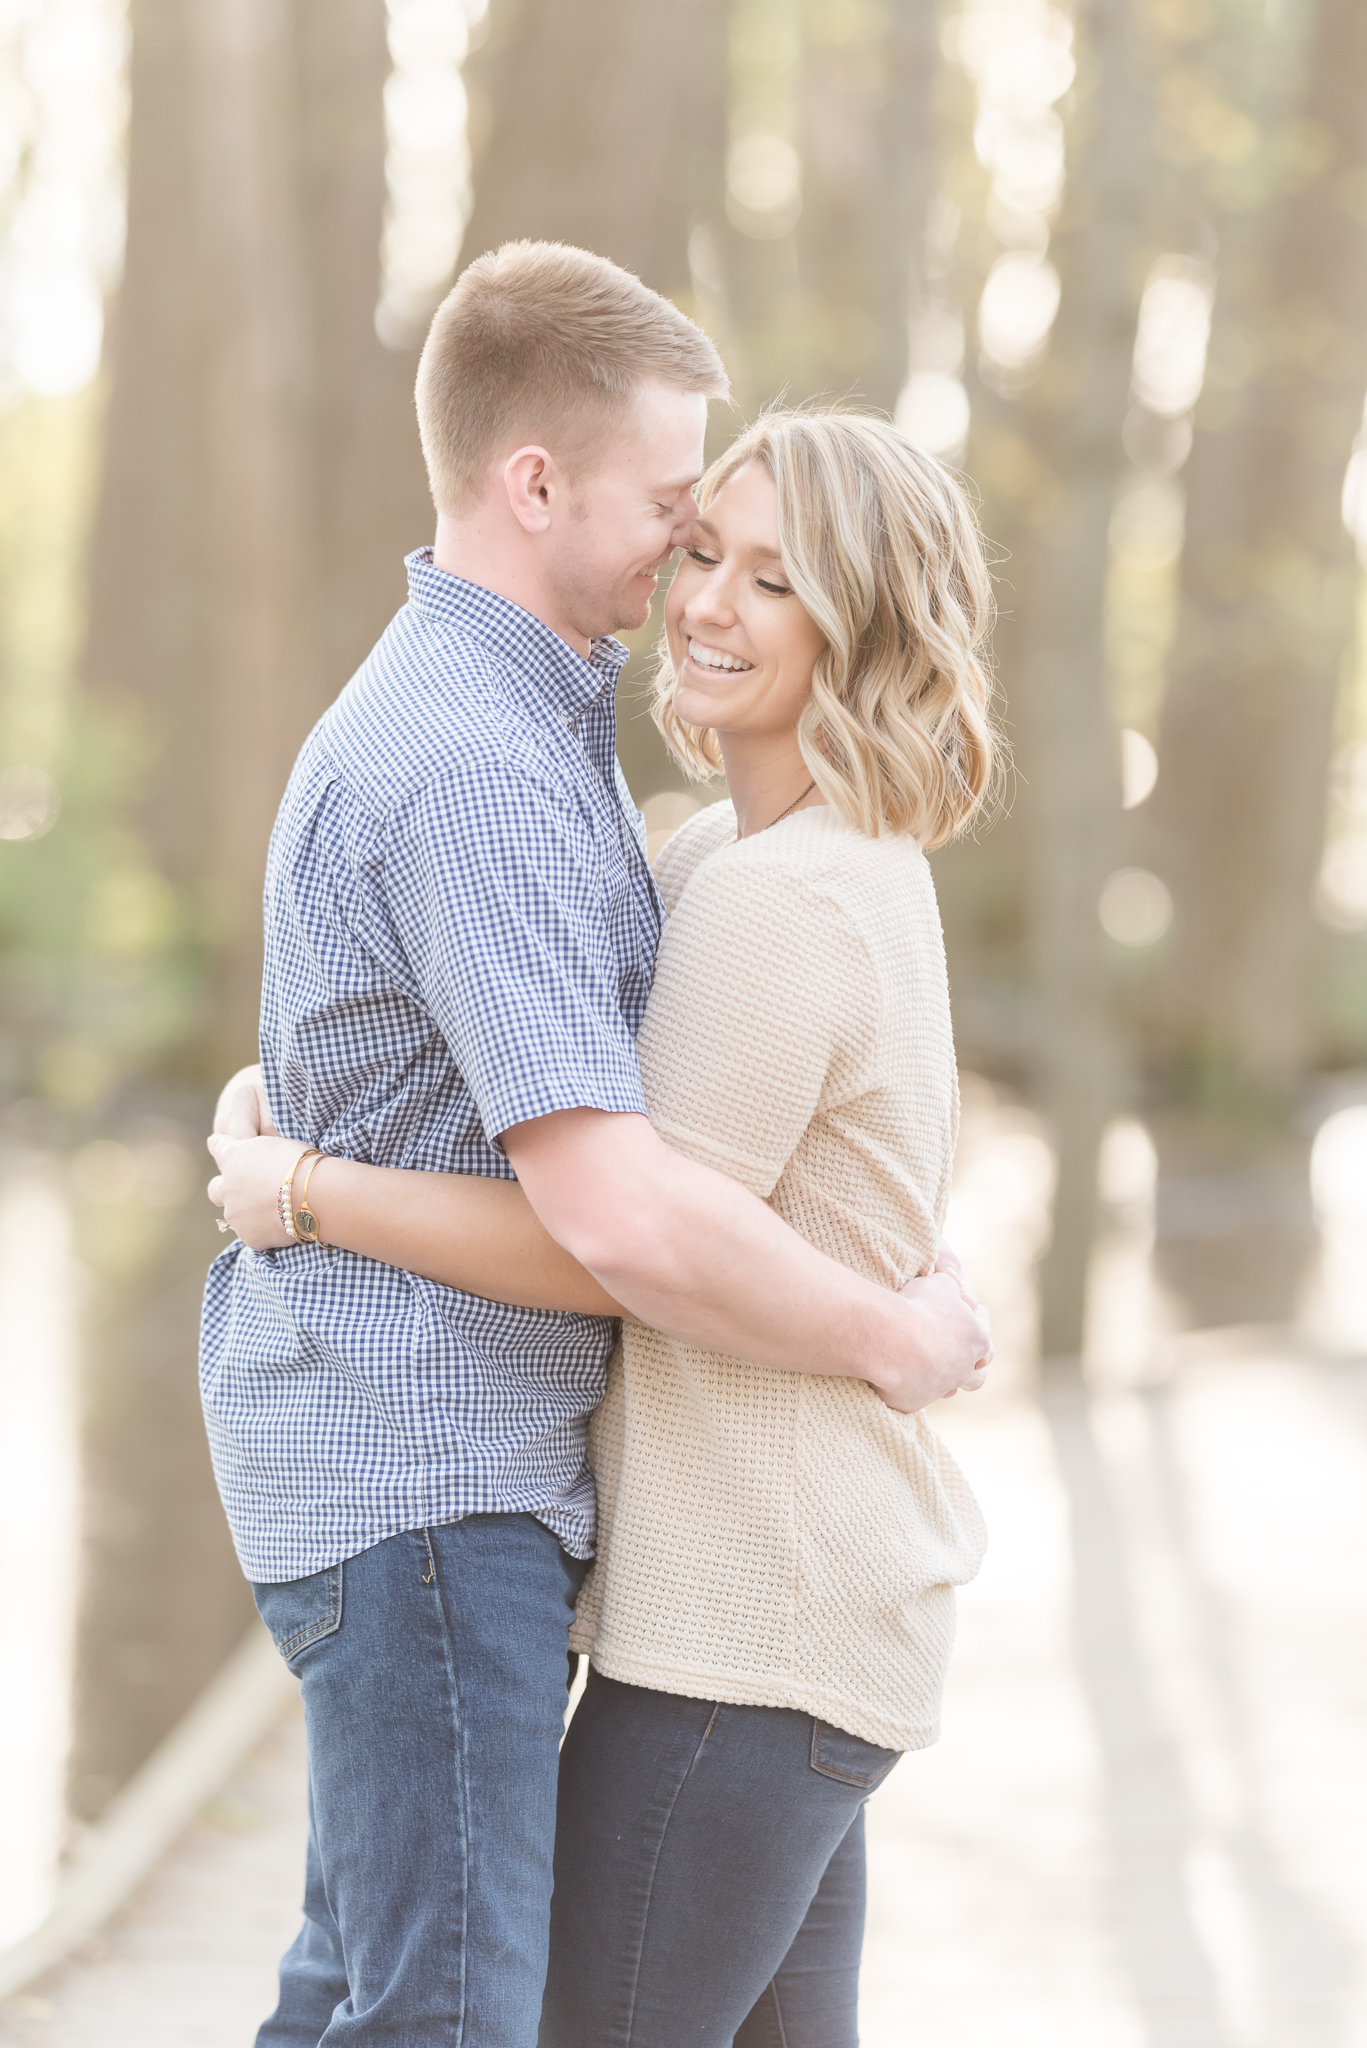 Richie Woods Nature Preserve and Mustard Seed Gardens Engagement Session Wedding Photos-12.jpg